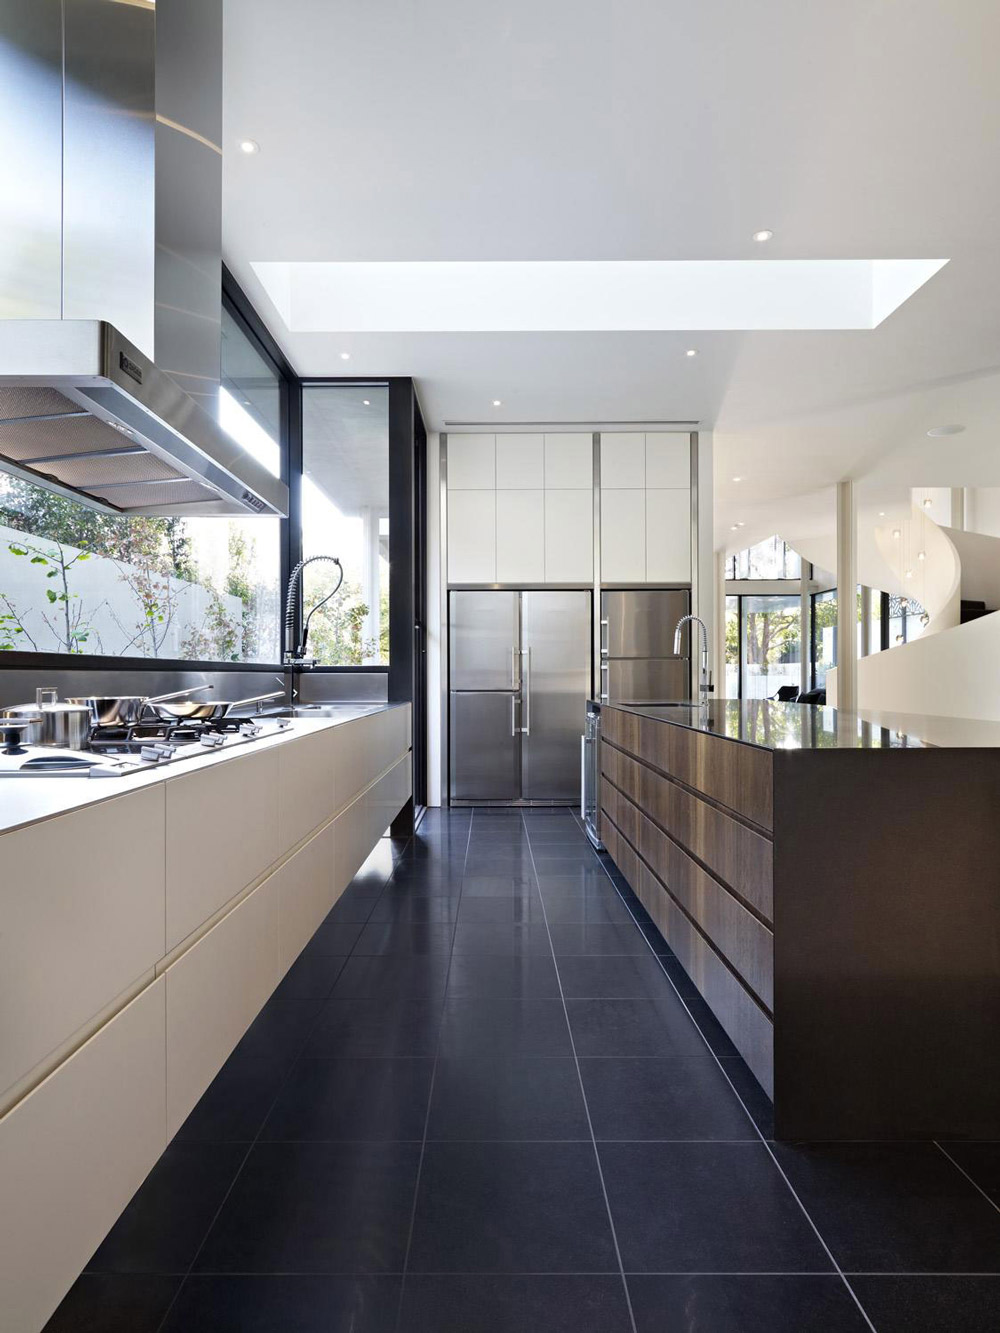 Verdant avenue home in melbourne australia by robert for Kitchen designs melbourne